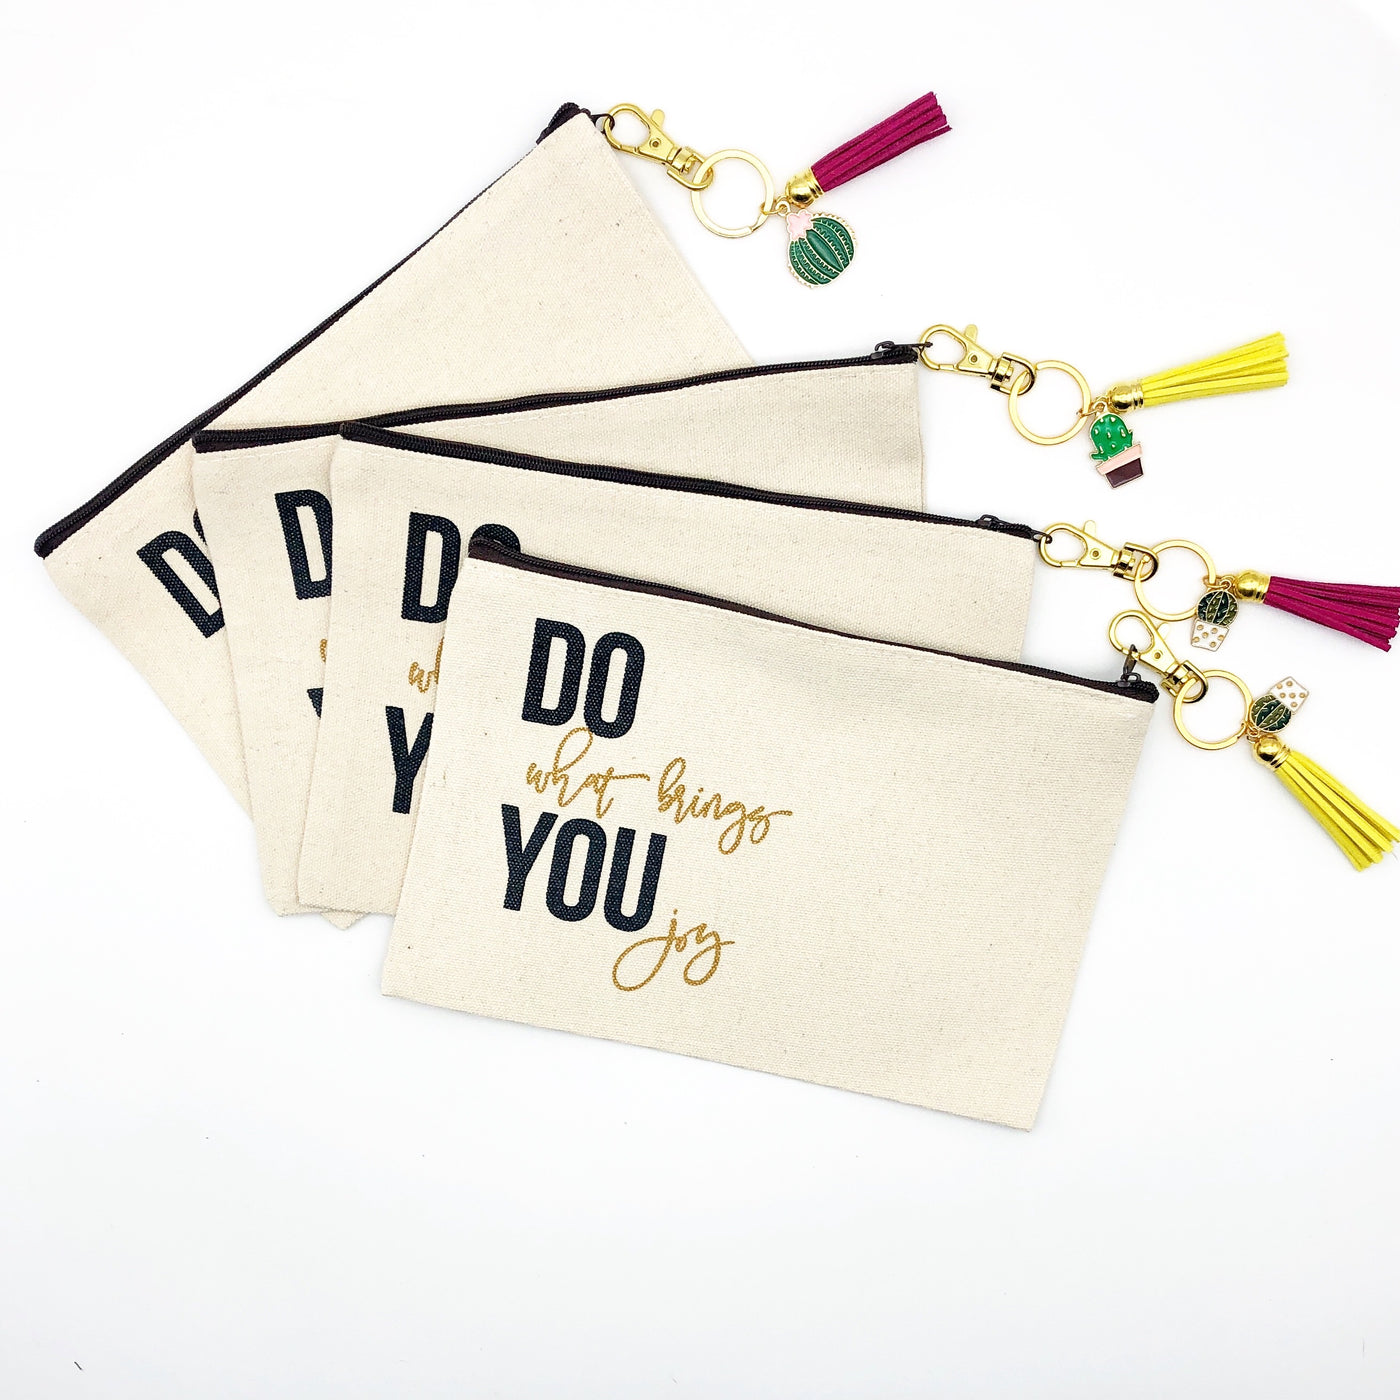 DO what brings YOU joy Stationery Kit